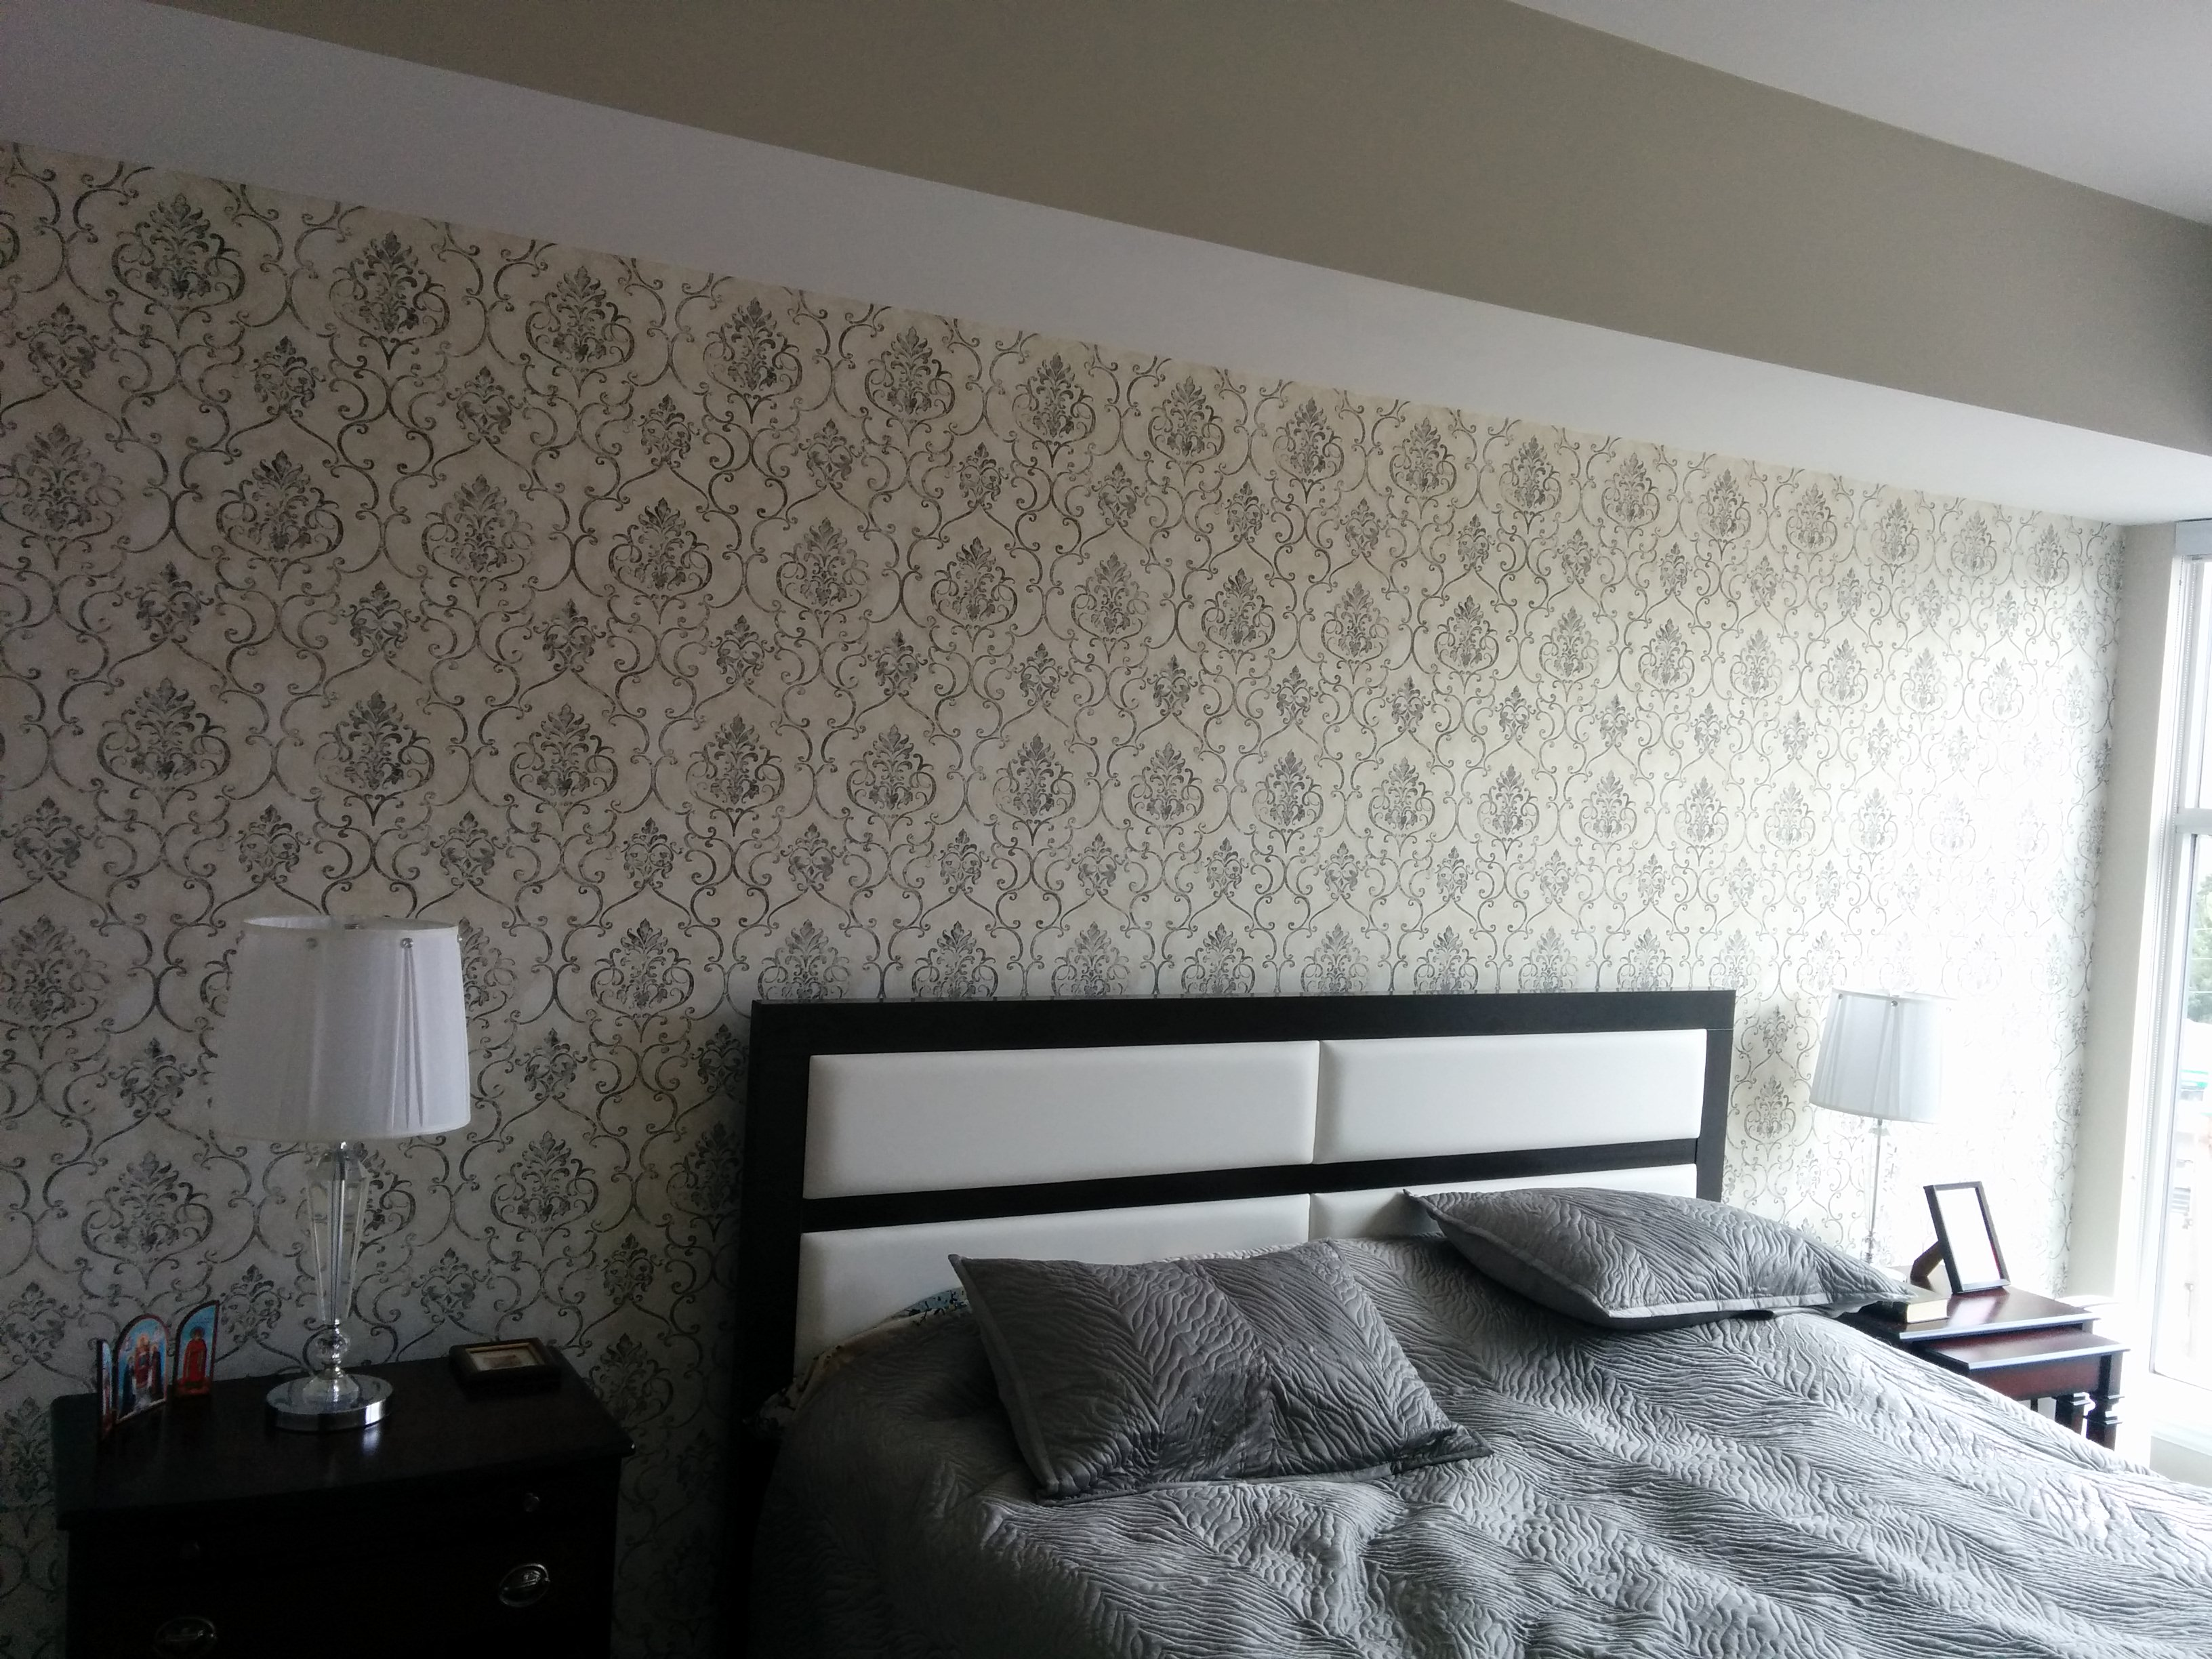 How much does it cost to wallpaper a room in Toronto